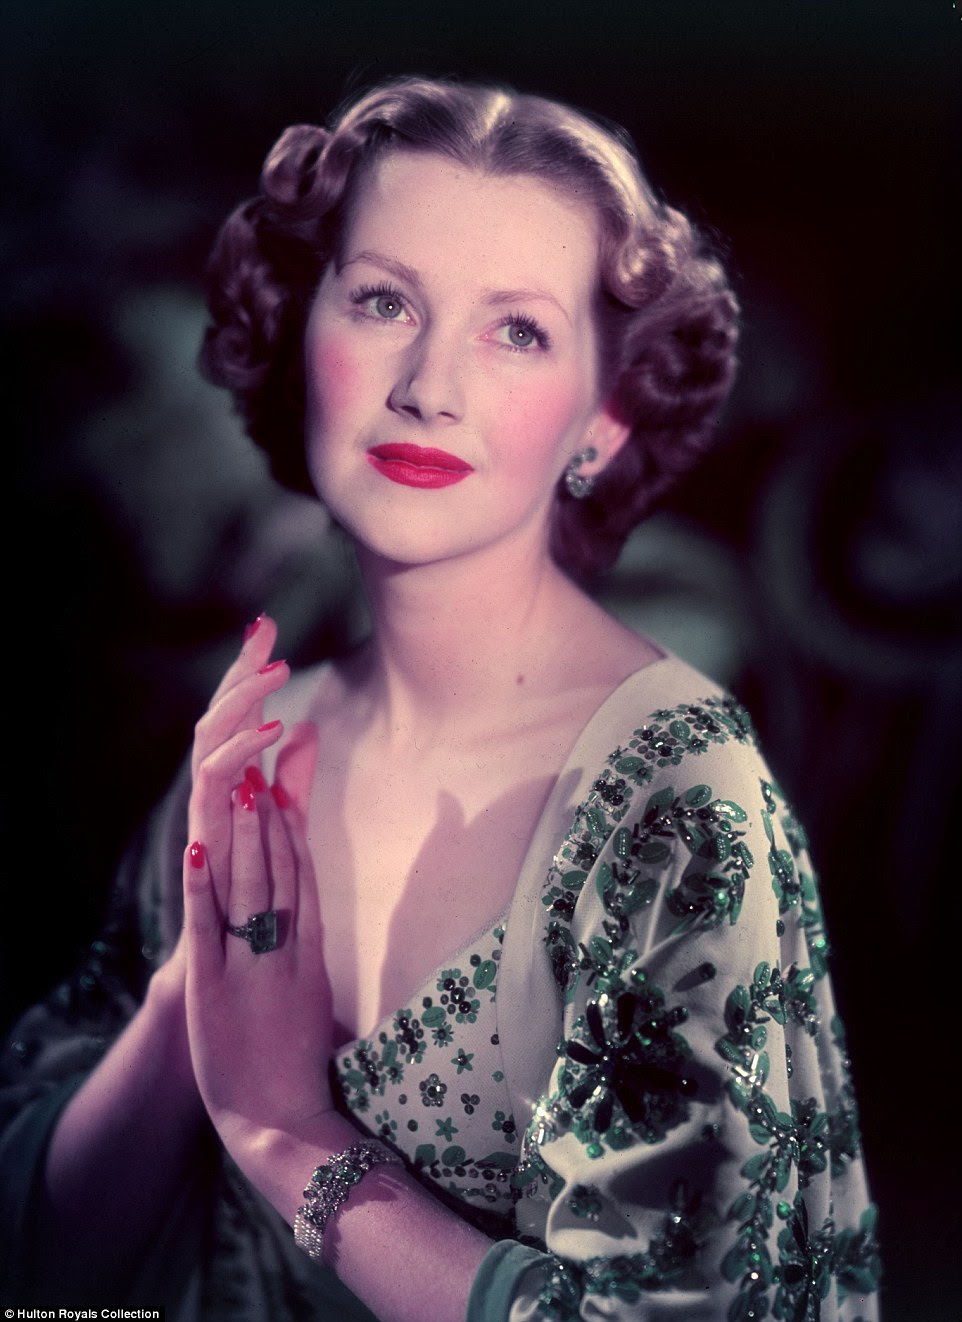 Raine Legge, as she was then known, is pictured above in 1957 during her marriage to the Earl of Dartmouth